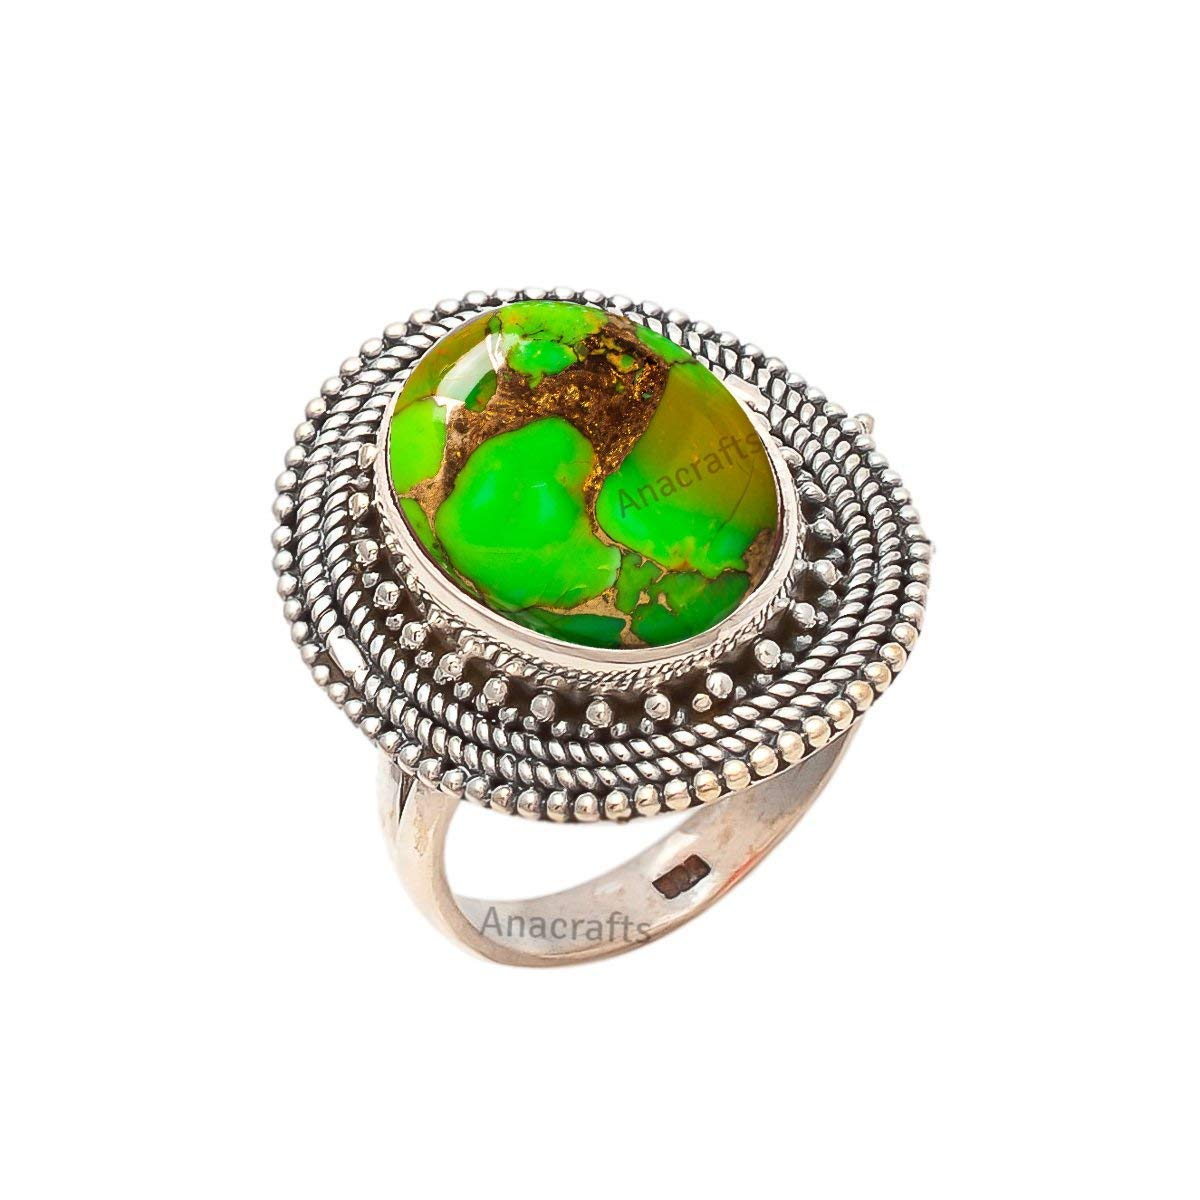 Green Copper Turquoise Ring 925 Sterling Silver - Statement Gemstone Ring For Girl Women Size US 4 5 6 7 8 9 10 11 12